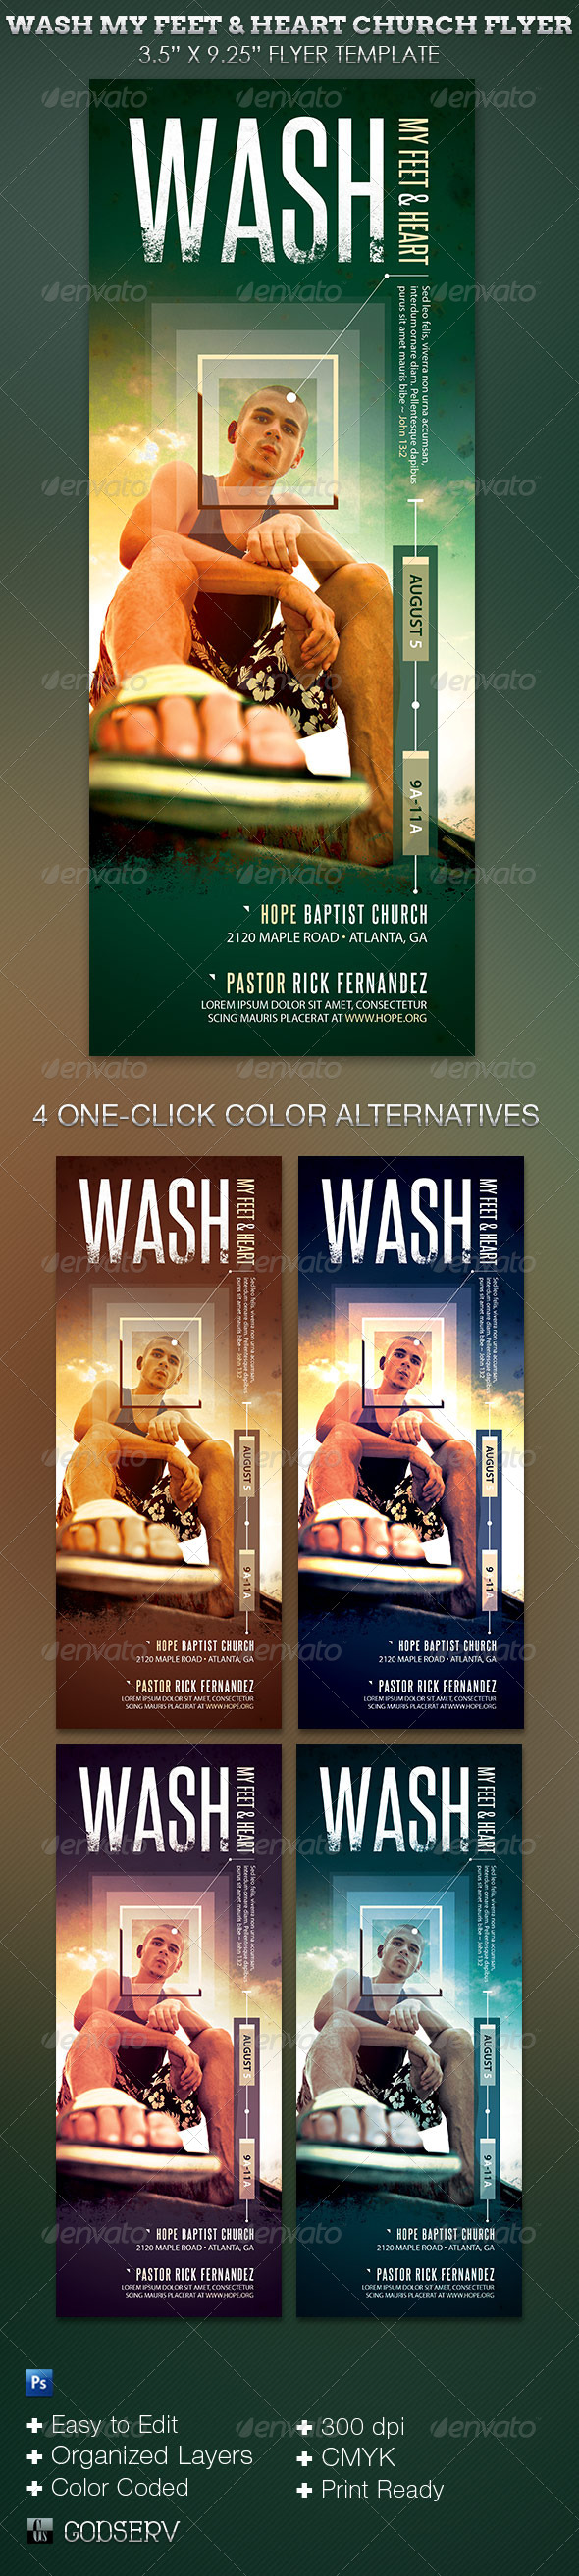 Wash My Feet and Heart Church Flyer Template - Church Flyers